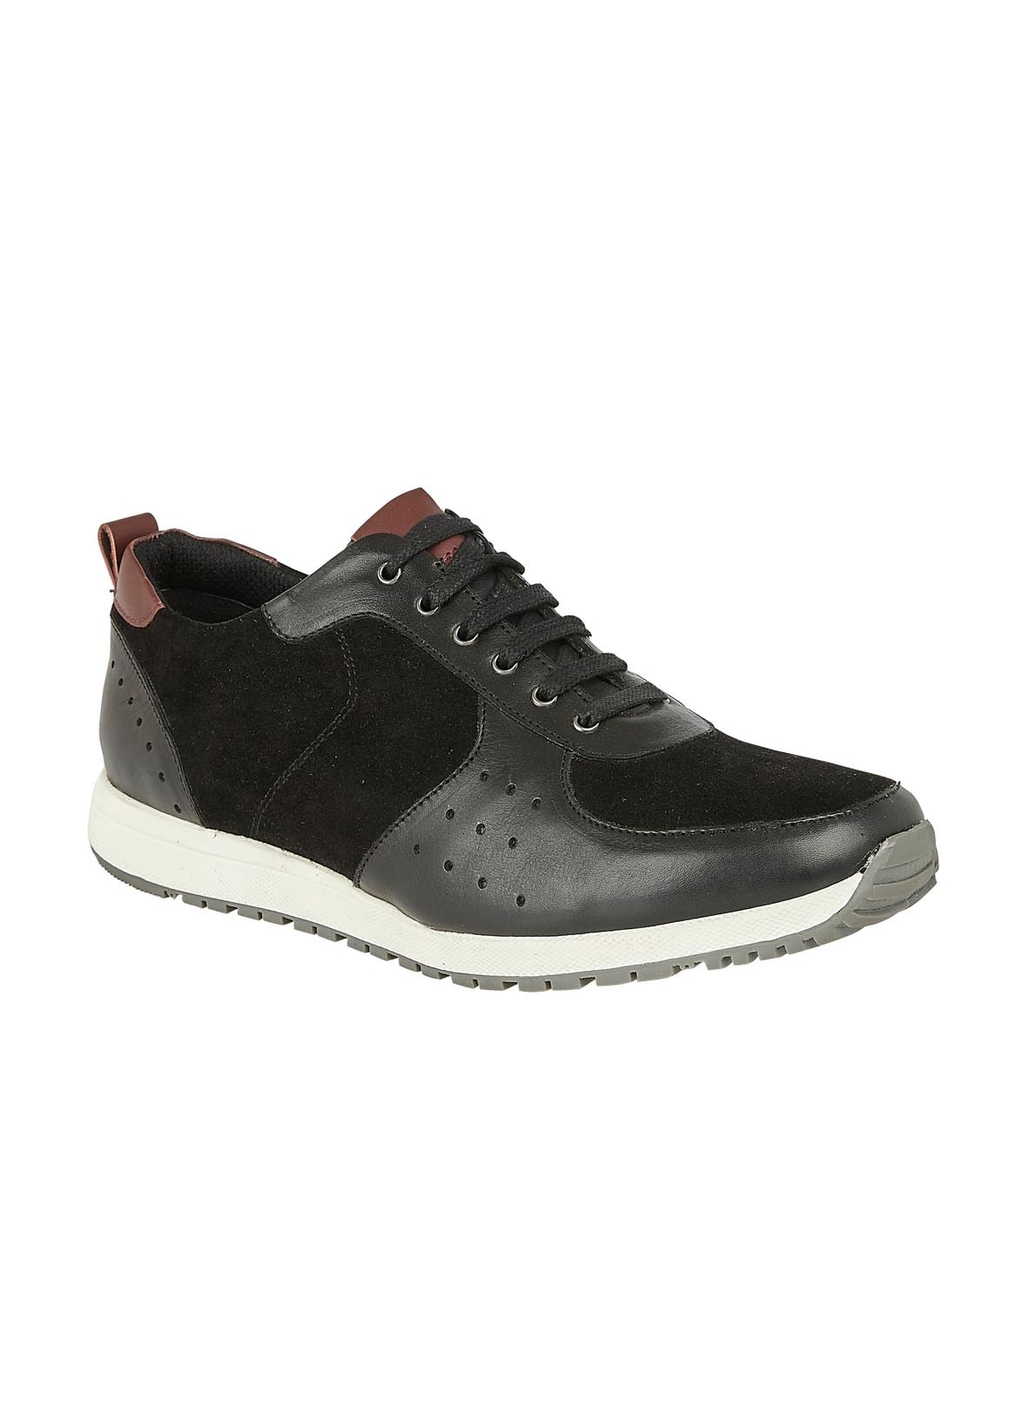 Lotus Abel Leather & Suede Trainer Style Shoe in Black